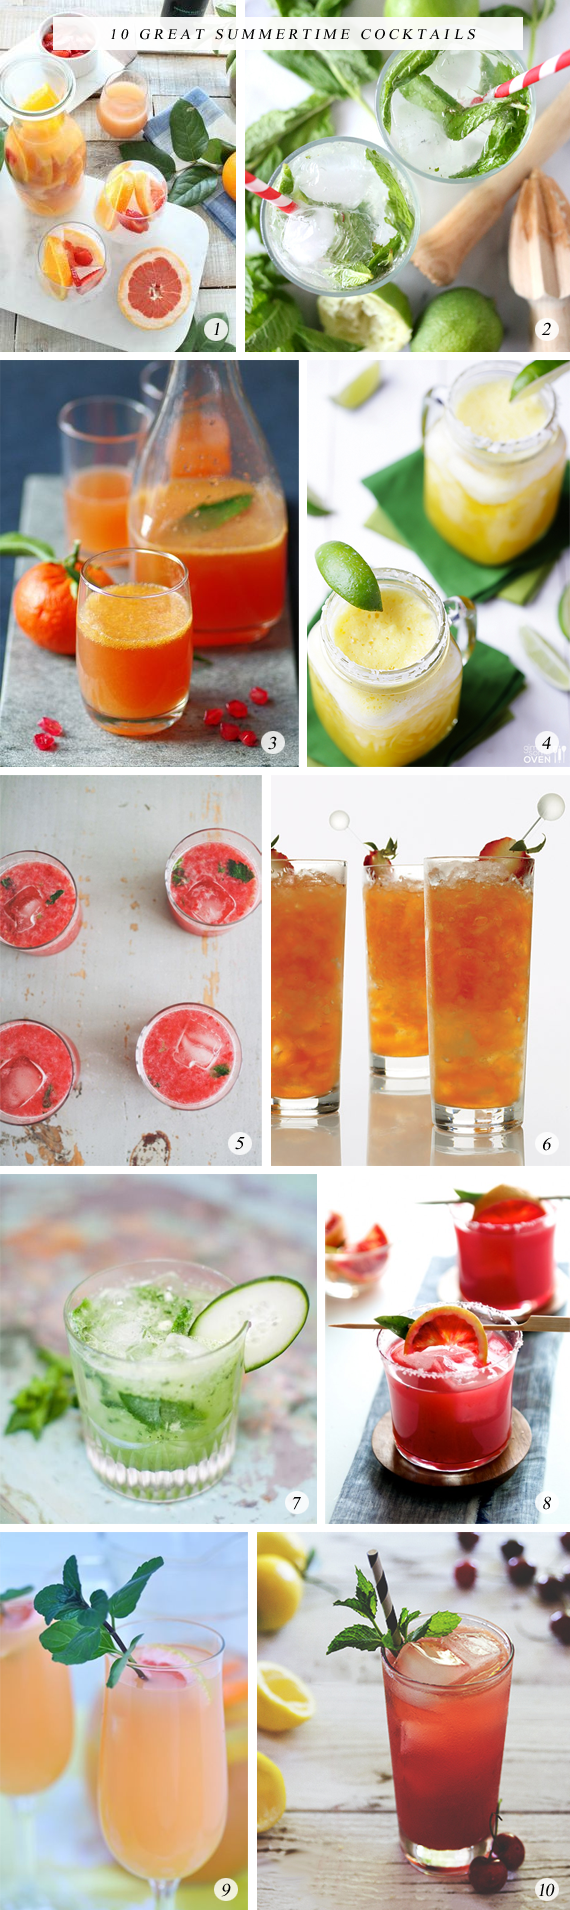 10 Great Summertime Cocktails // Bubby and Bean